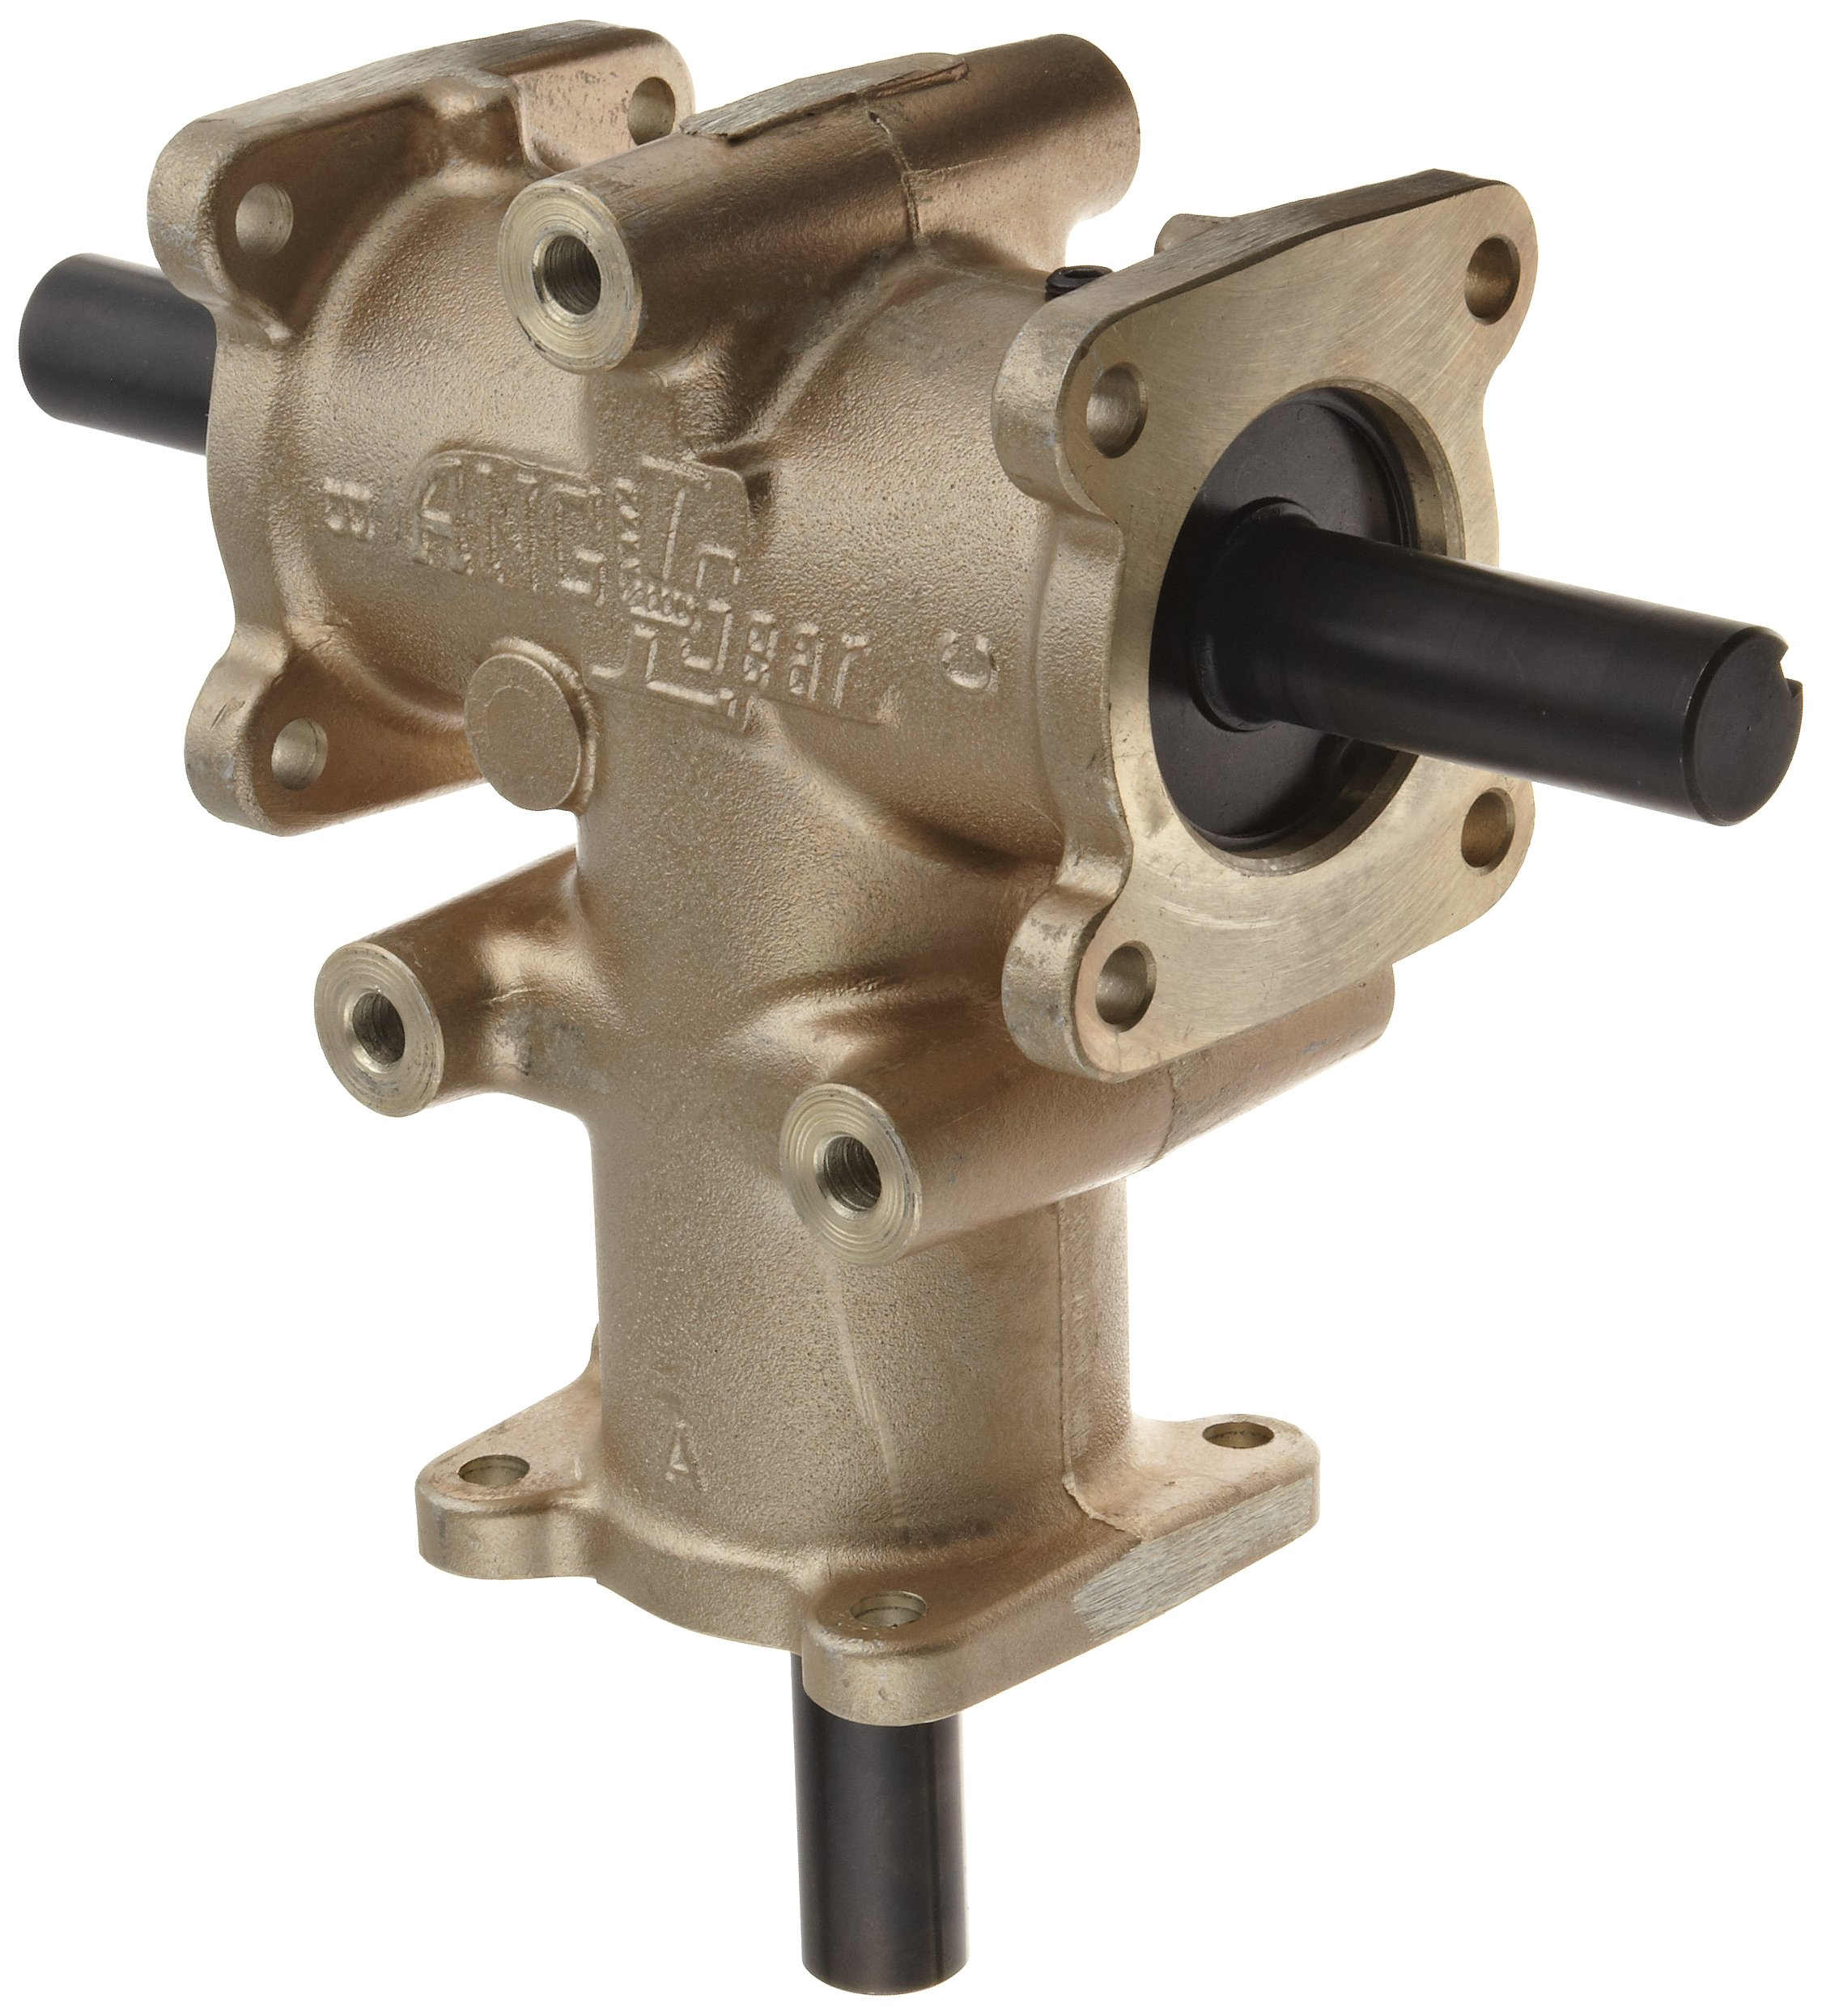 Andantex R3500 Anglgear Right Angle Bevel Gear Drive, Universal Mounting, Two Output Shafts, 3 Flange, Inch, 1'' Shaft Diameter, 1:1 Ratio, 7.04 HP at 1750rpm